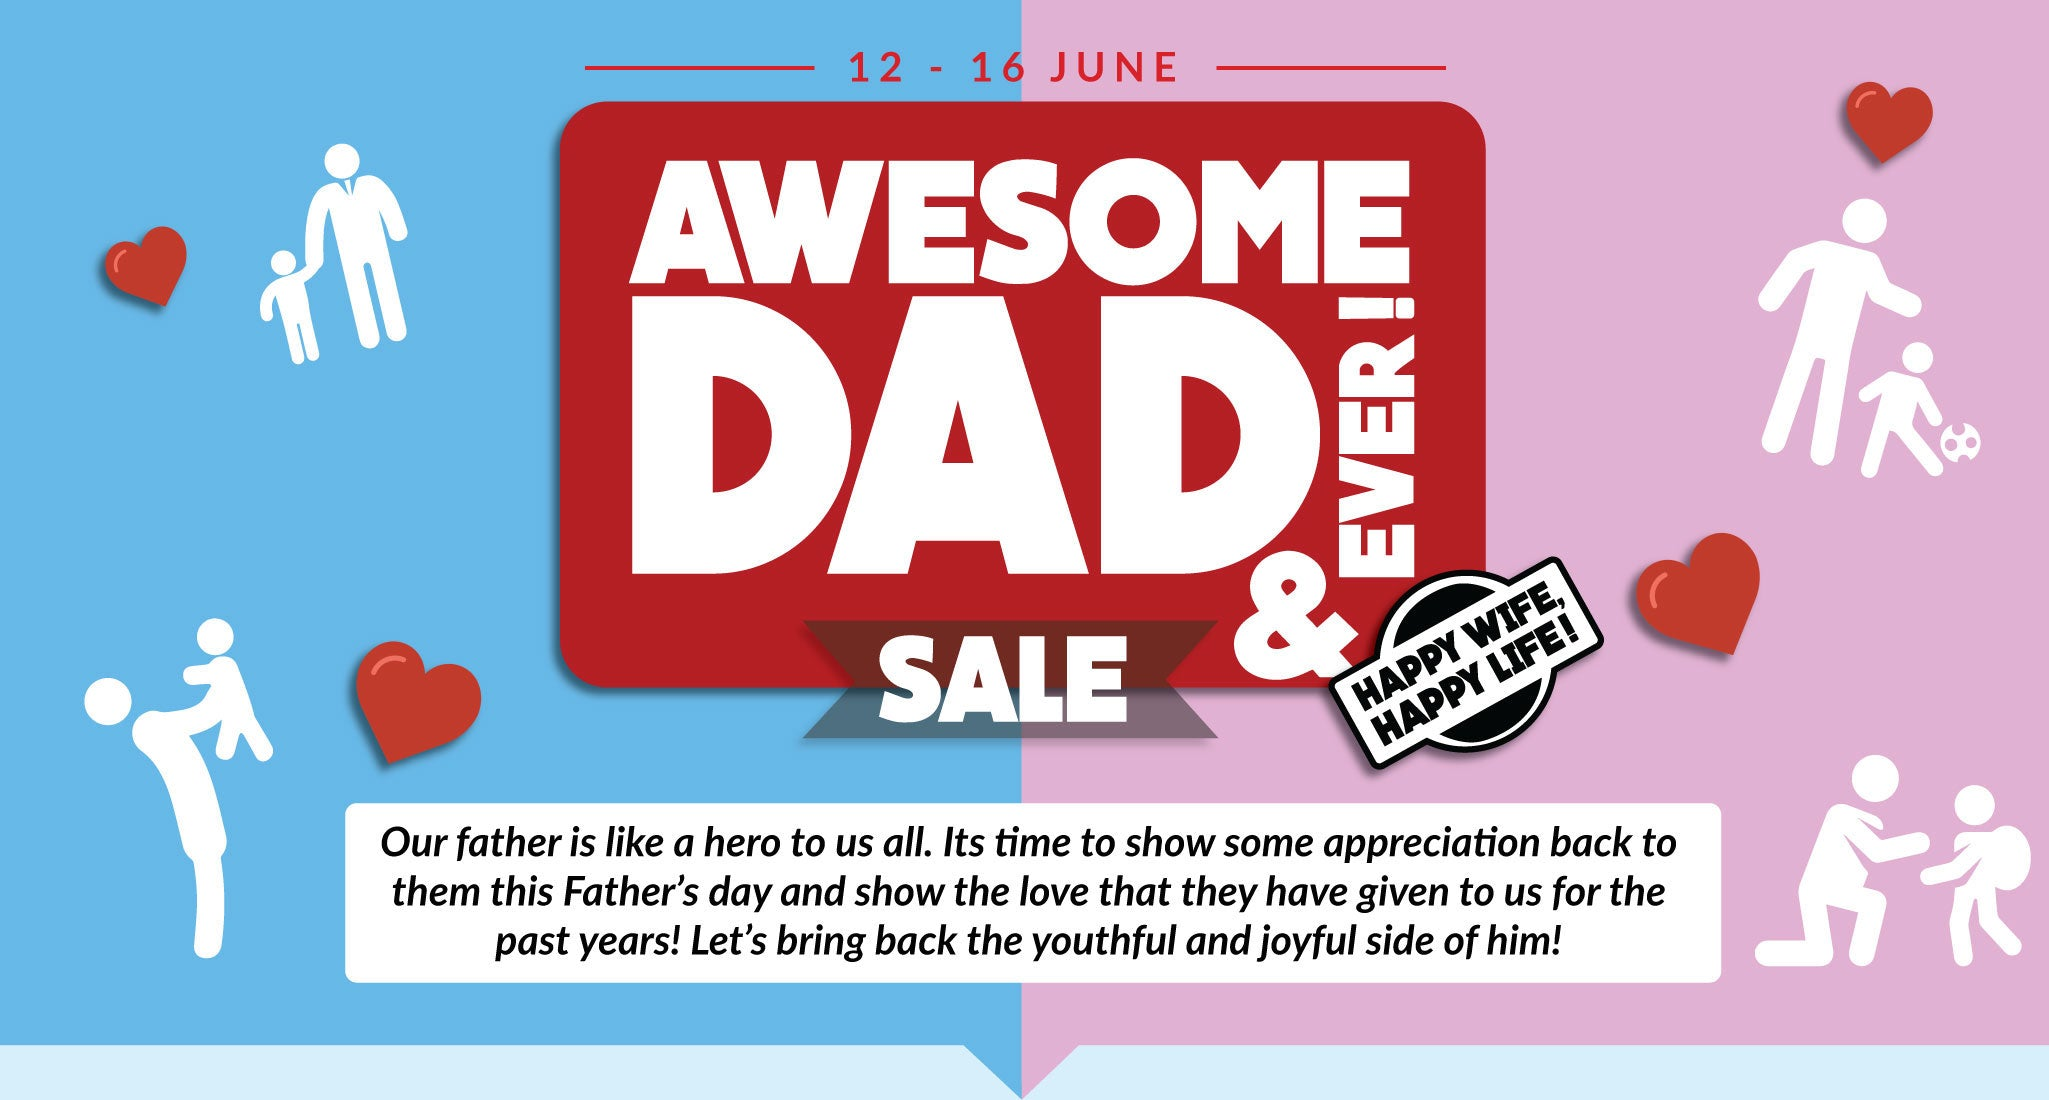 Awesome Dad Ever Sale!